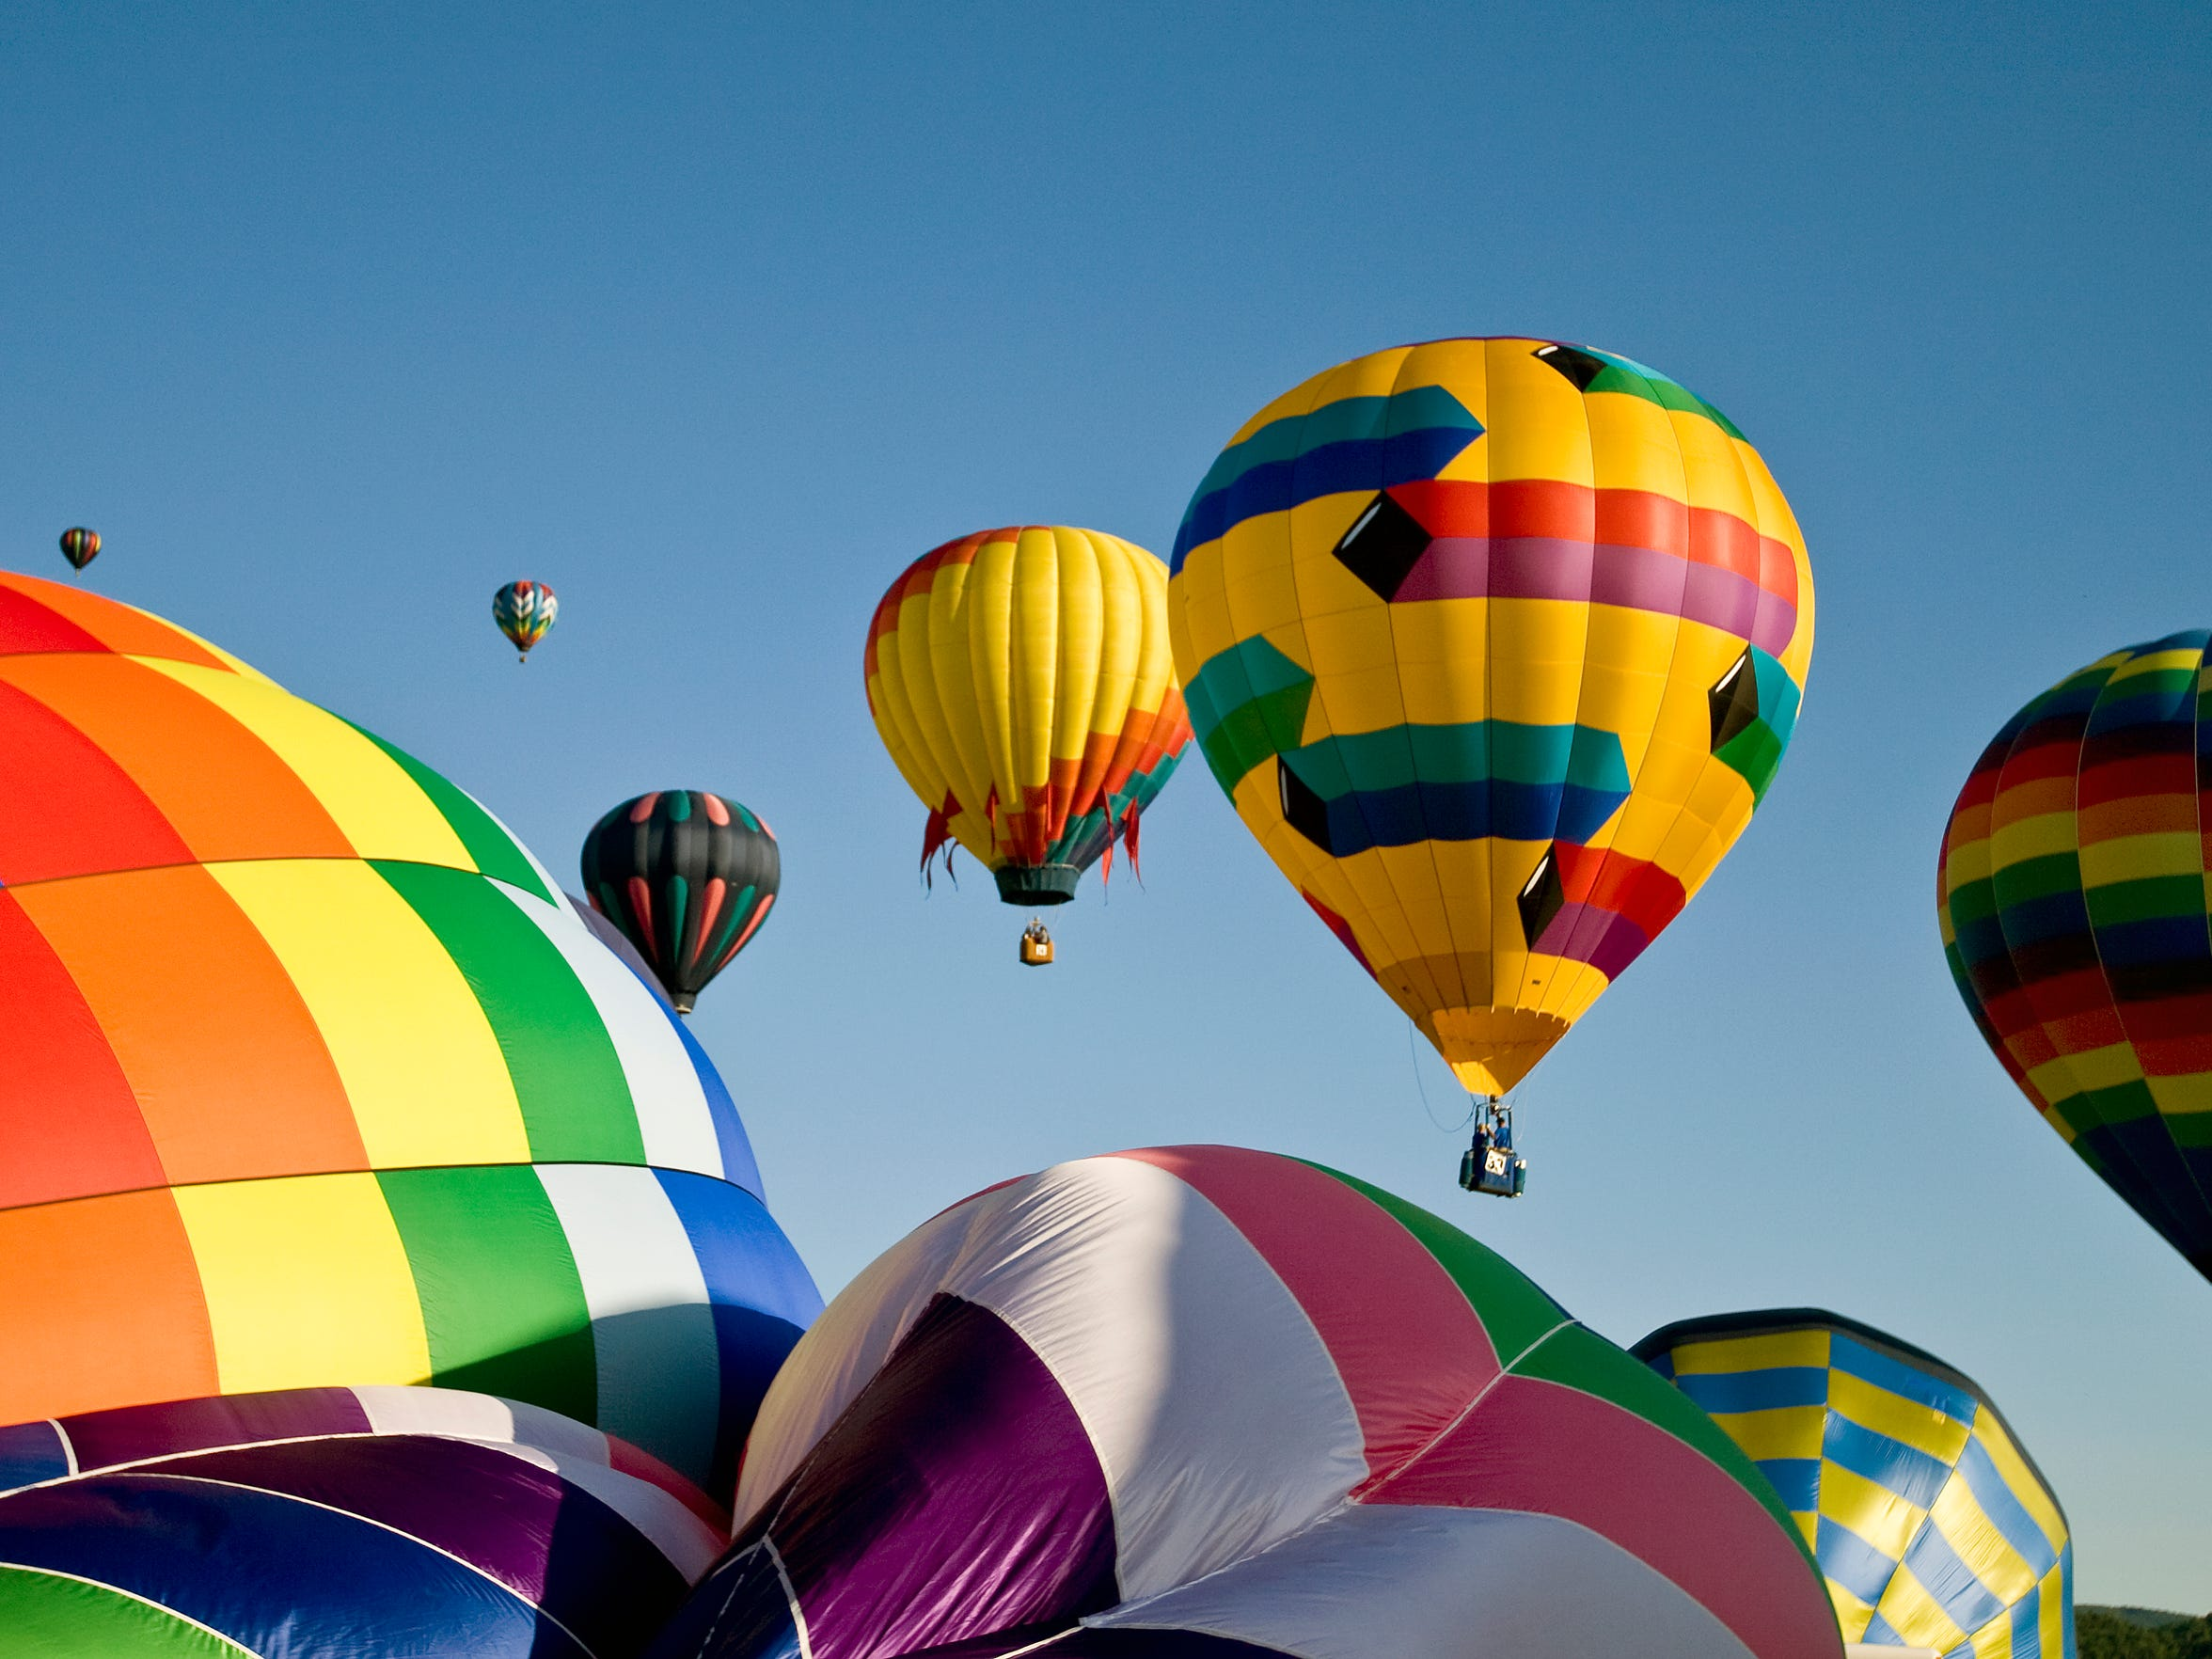 The New York State Festival of Balloons begins Friday at Dansville Municipal Airport. Balloon launches (weather permitting) are at 6 p.m. Friday; 6 a.m. and 6 p.m. Saturday and Sunday; 6 a.m. Monday. Admission is $5; free for children 11 and younger.